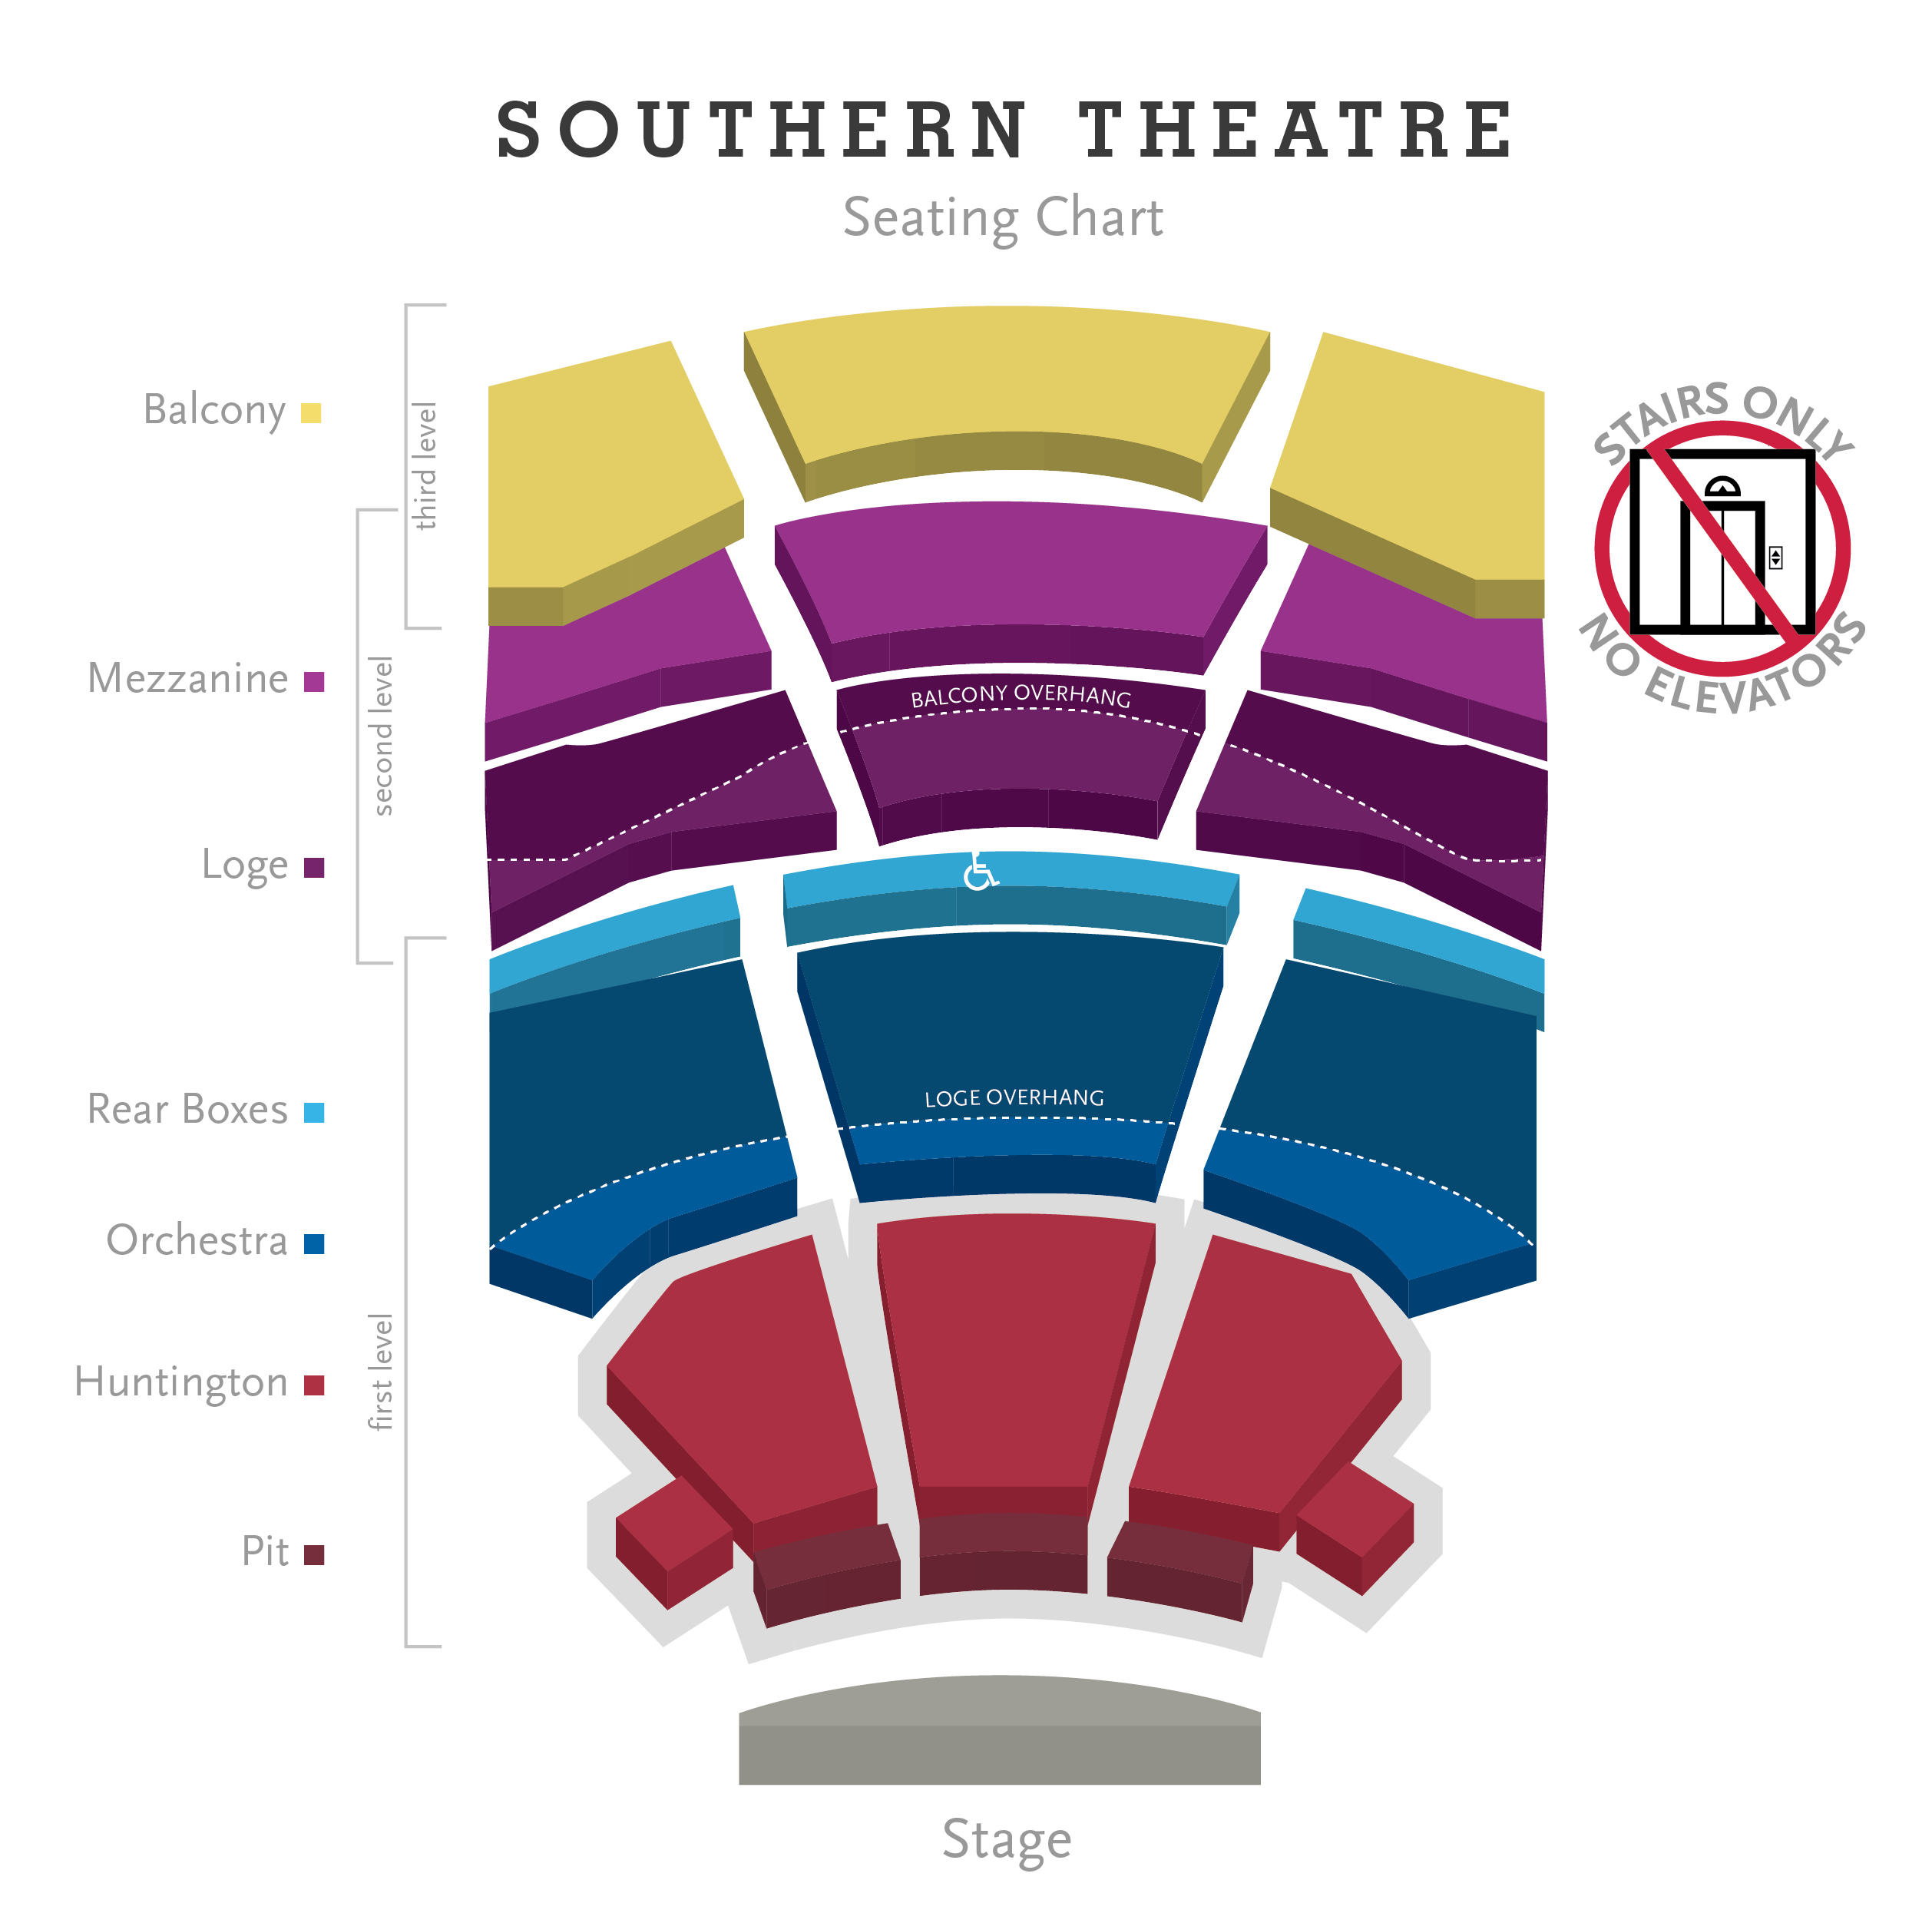 Southern Theatre Seating Chart Png